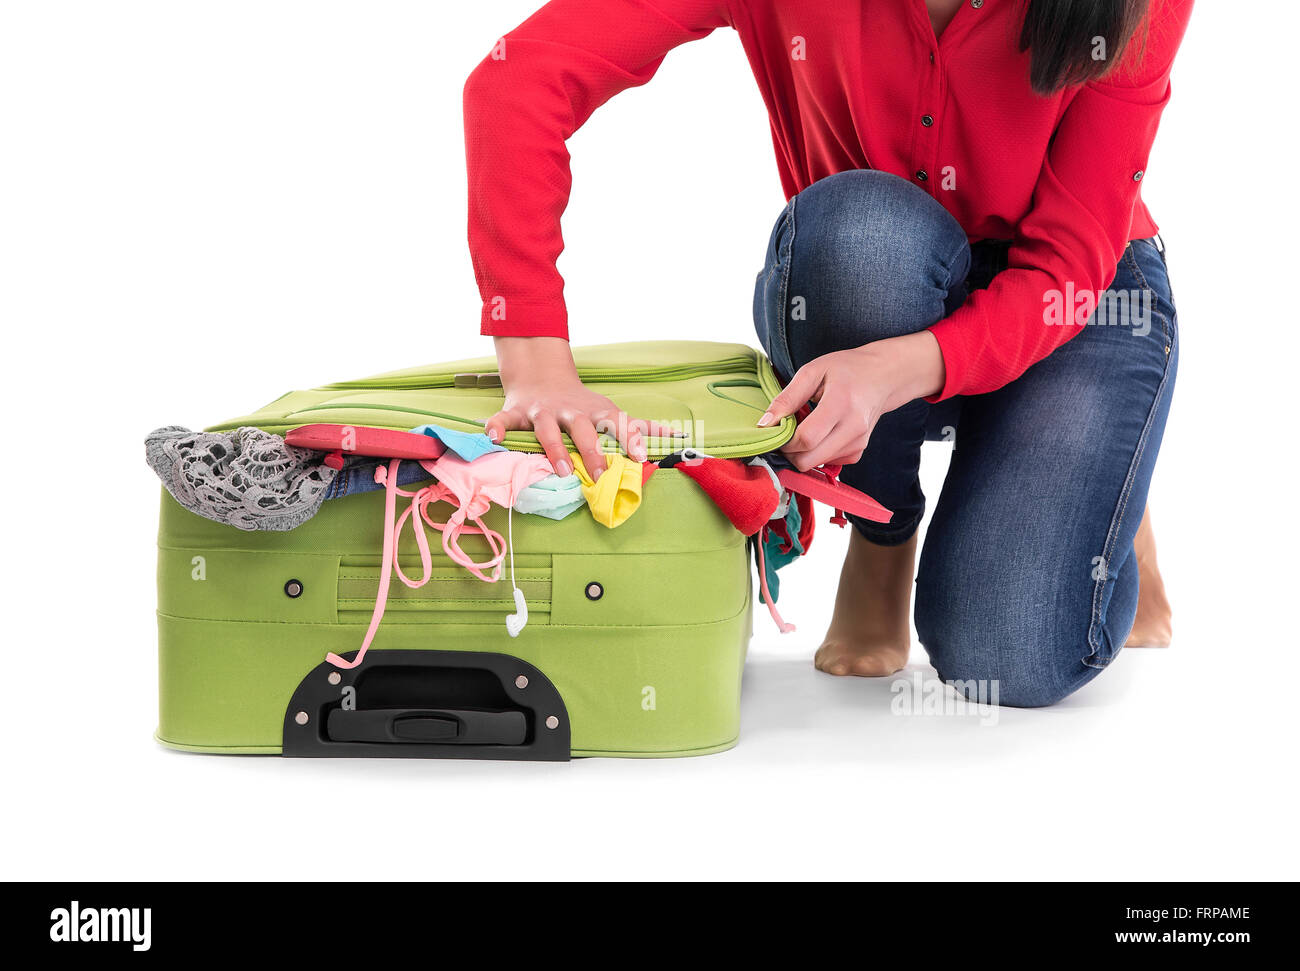 Difficile à emballer valise débordante. Sur un fond blanc. Photo Stock